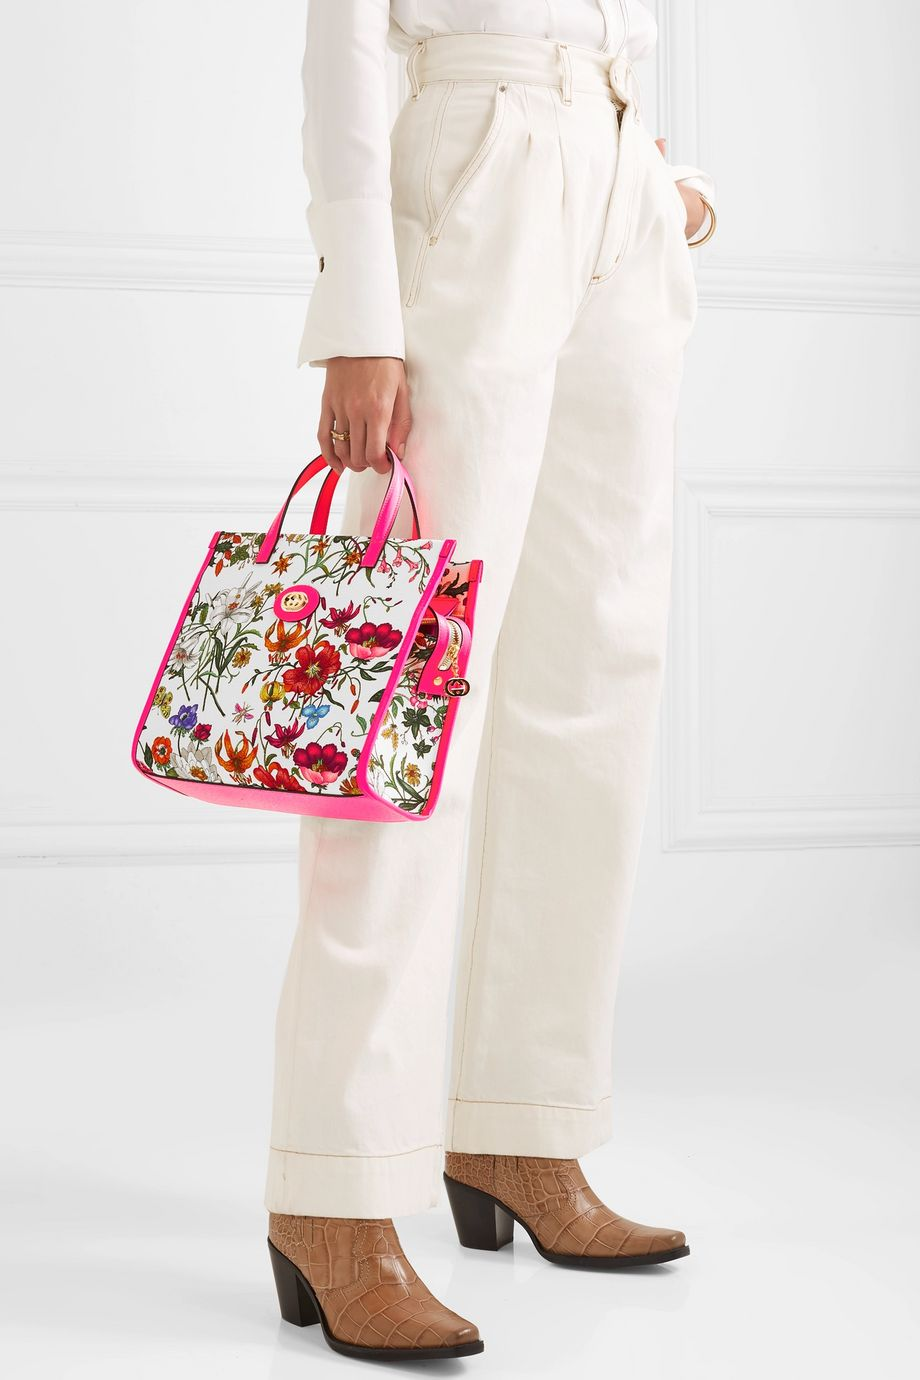 Gucci Flora medium leather-trimmed printed canvas tote